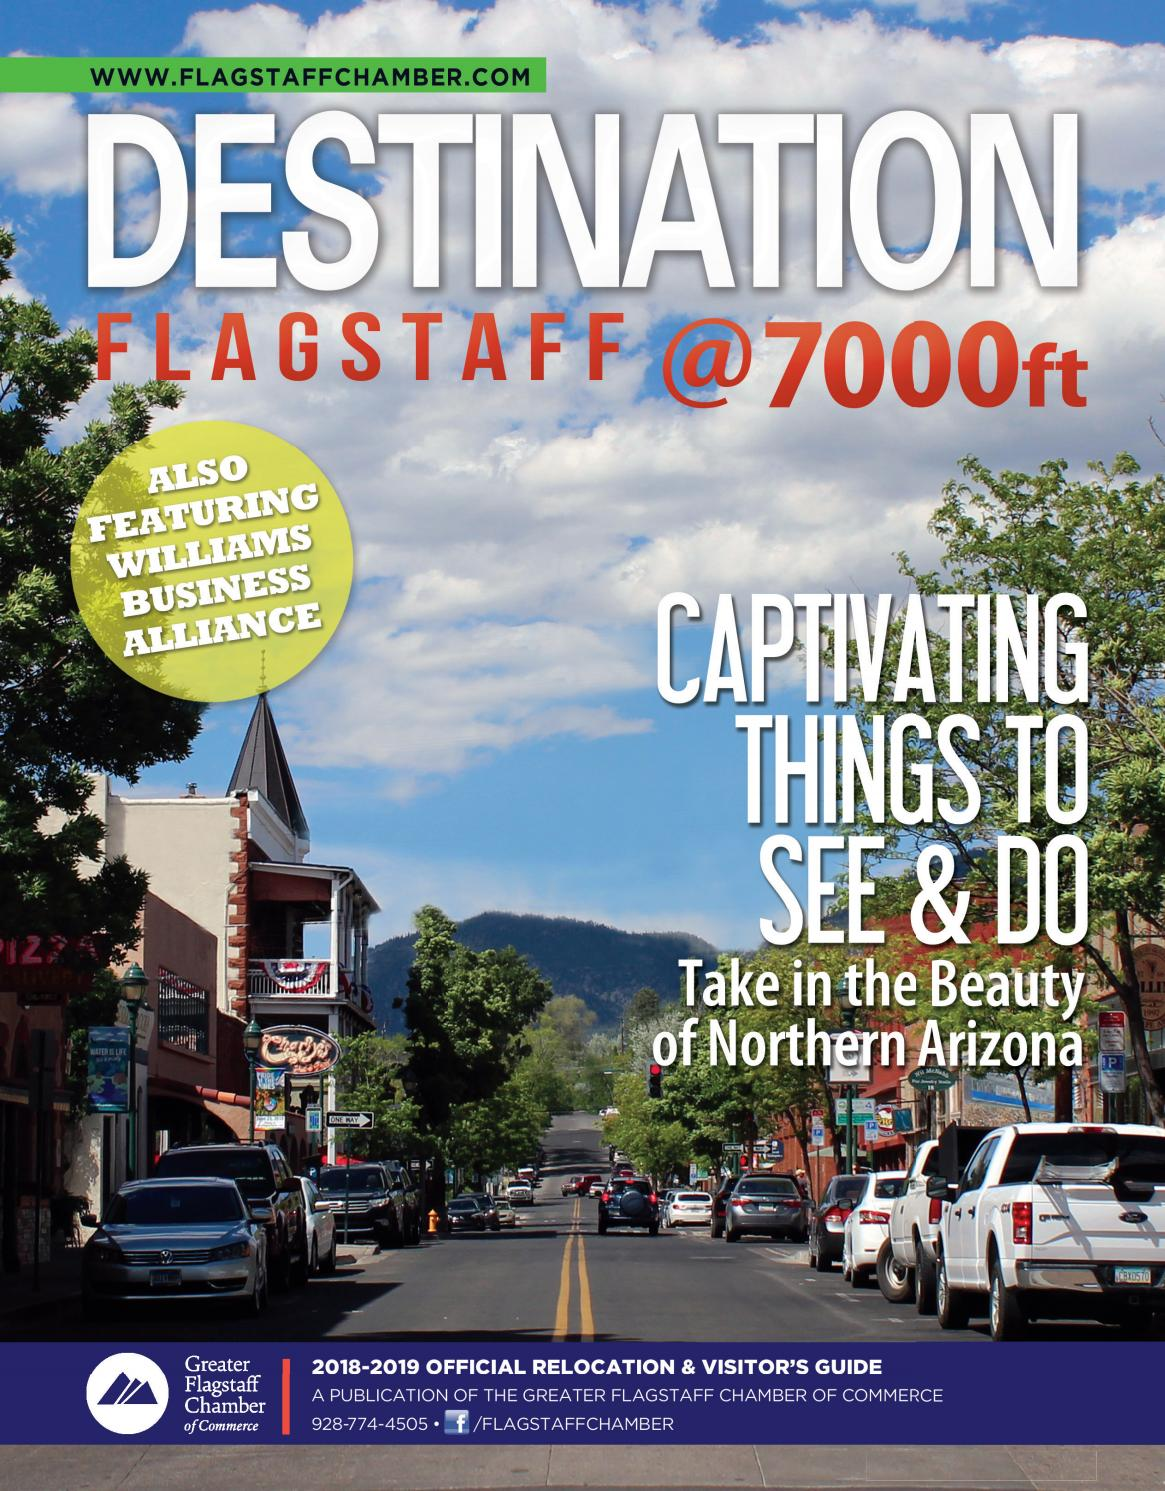 Destination Flagstaff Chamber Guide by Town Square Publications, LLC